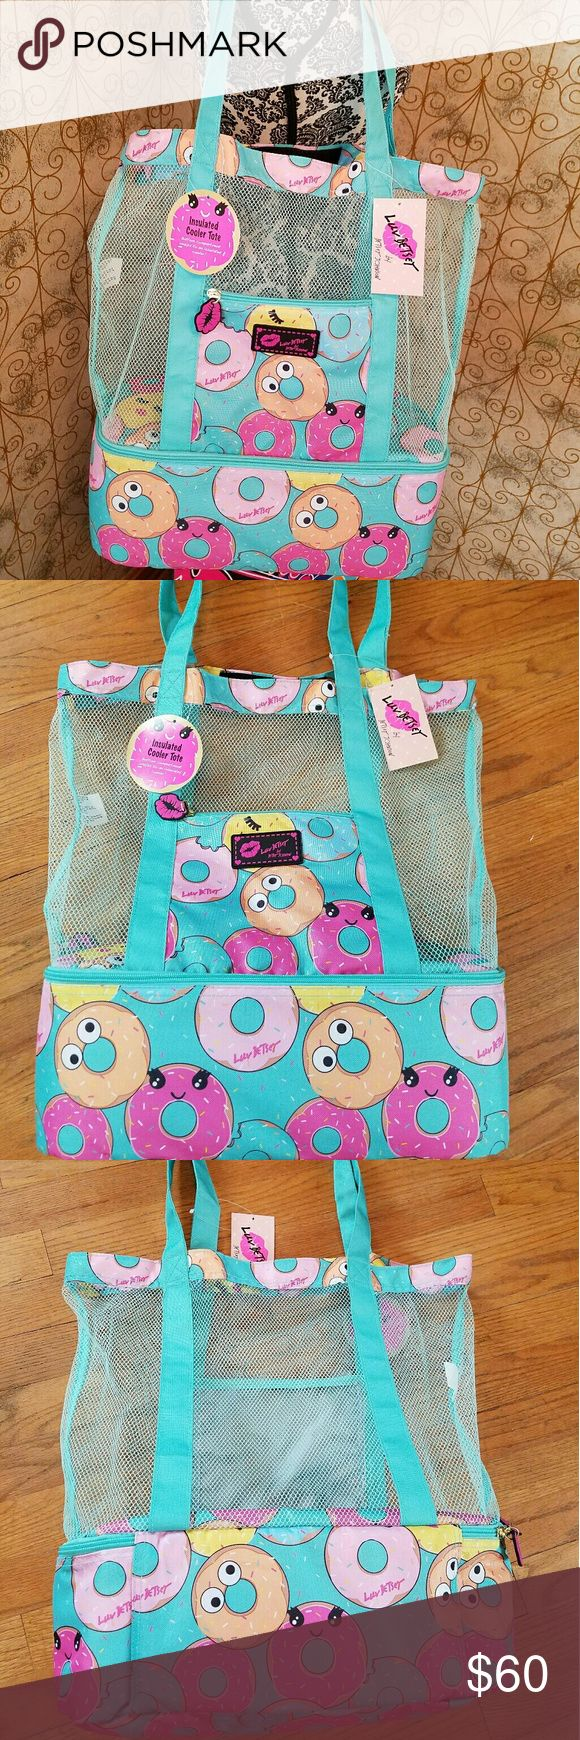 "⛱NWT-BETSEY JOHNSON BEACH TOTE WITH BOTTOM COOLER! ⛱NWT-BETSEY JOHNSON BEACH TOTE WITH BOTTOM COMPARTMENT THAT UN ZIPS TO AN INSULATED COOLER! THIS IS SO SUPER COOL FOR THE BEACH, PICNIC OR A DAY OUT SO MANY USES ONCE AGAIN SHE HAS OUT DONE HERSELF WITH THIS AMAZING BAG😍 DEFINITELY A MUST HAVE FOR SUMMER. PLENTY OF ROOM TO CARRY YOUR BELONGINGS OFFERS A ZIPPER IN THE FRONT. IT'S GREAT BECAUSE IT'S A MESH BAG EASY TO CLEAN AND SHACK OUT THE SAND JUST AMAZING!!  SIZE: TOTAL L19""X16W - FROM…"